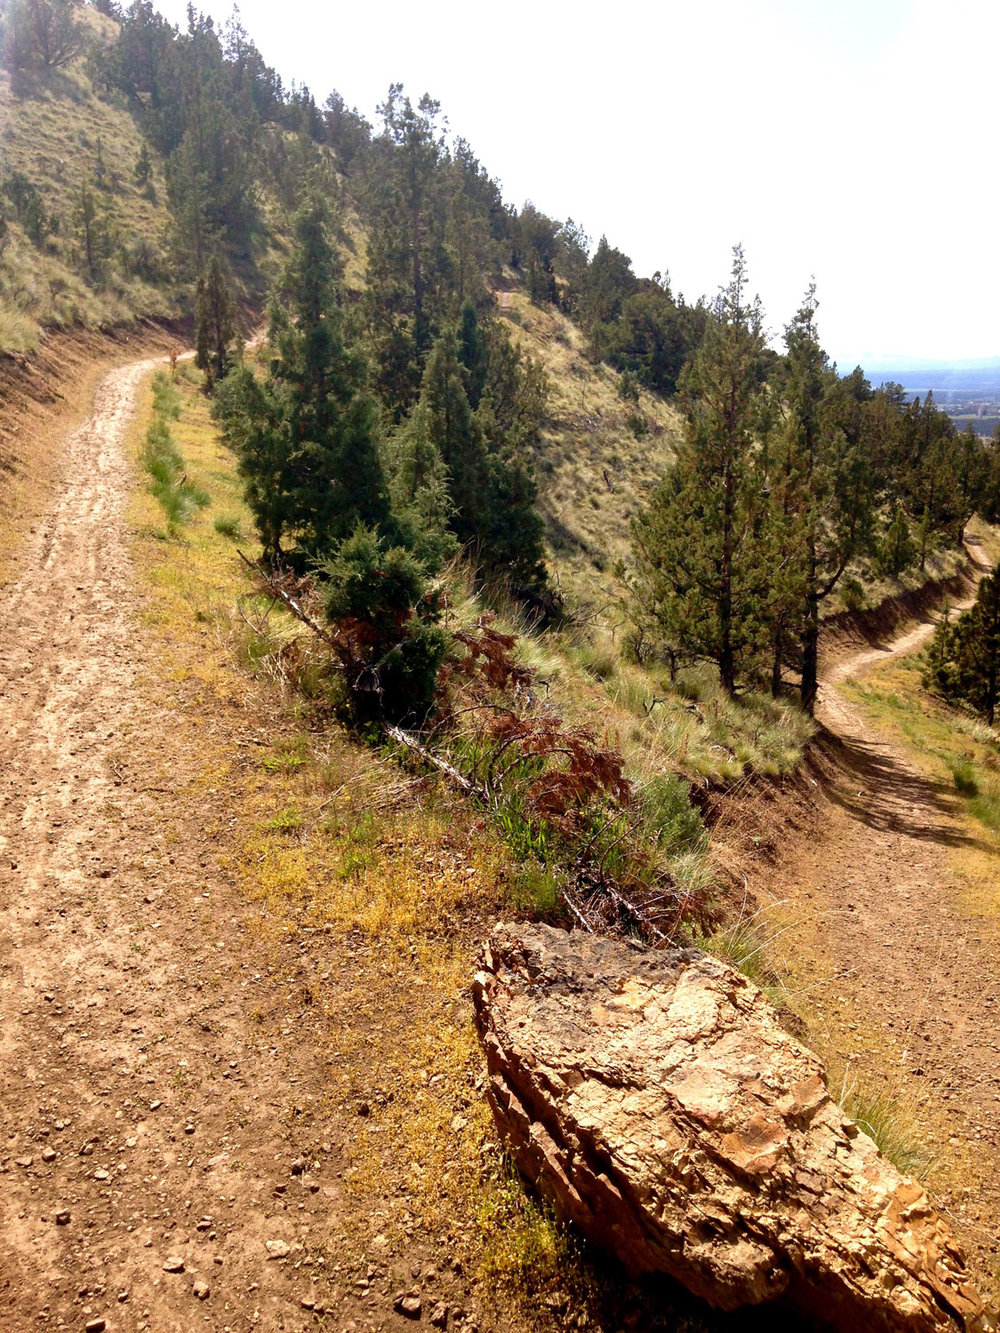 The famous switchbacks of the Summit Trail at Smith Rock State Park.